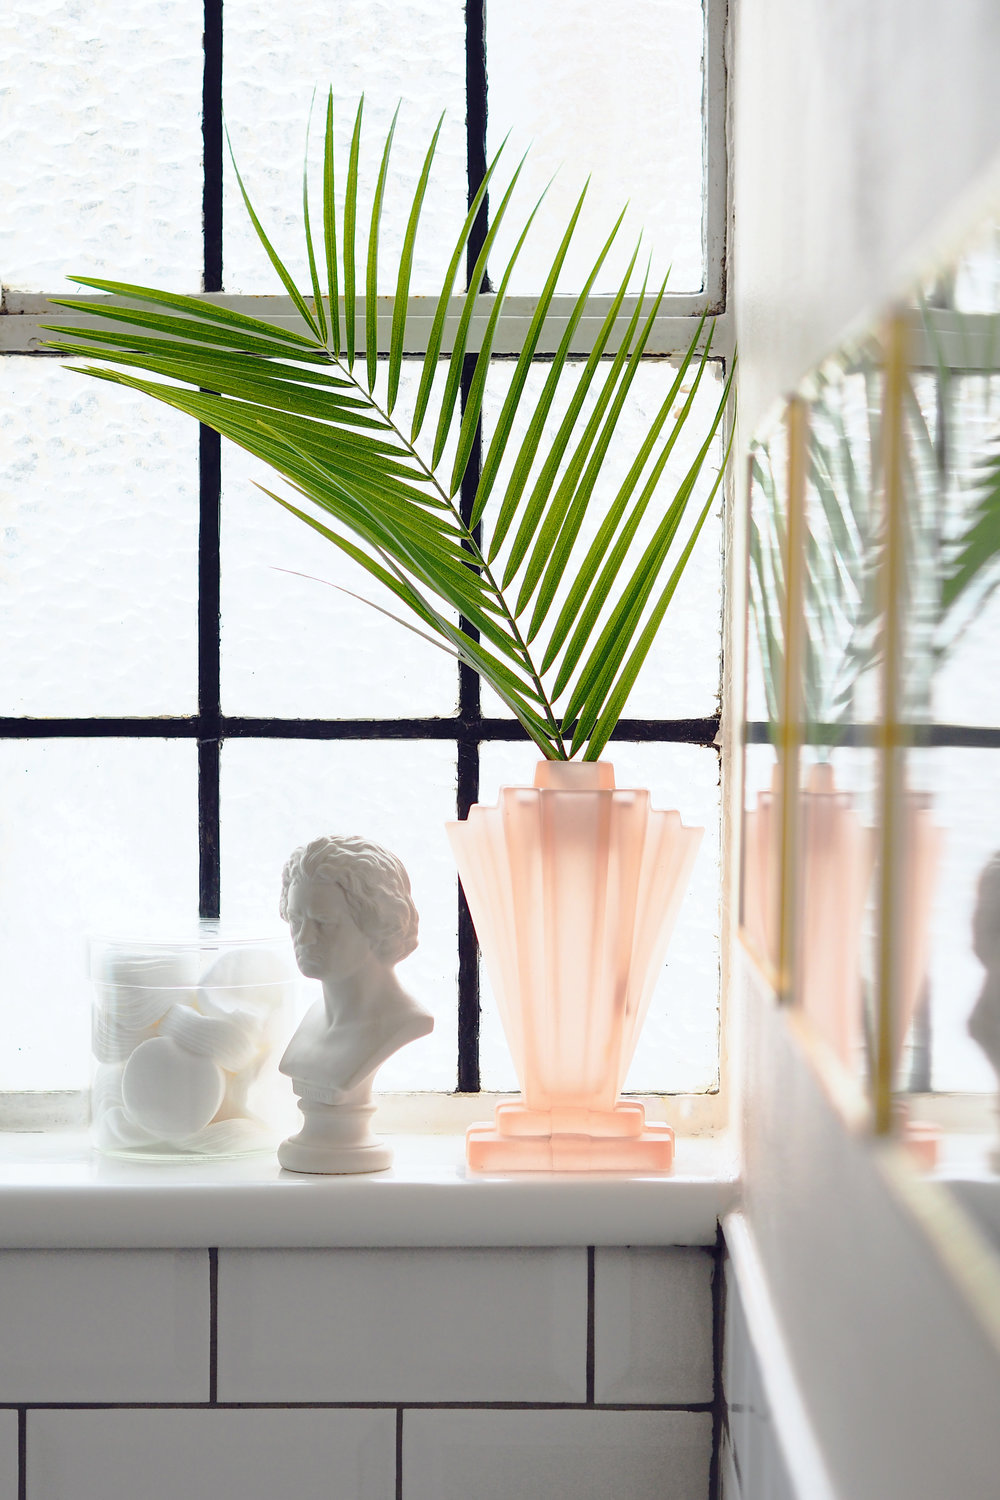 Ever wished you could make your interior a bit more ecletic, or have more of your own personality? here are three ways to develop your own decor style.